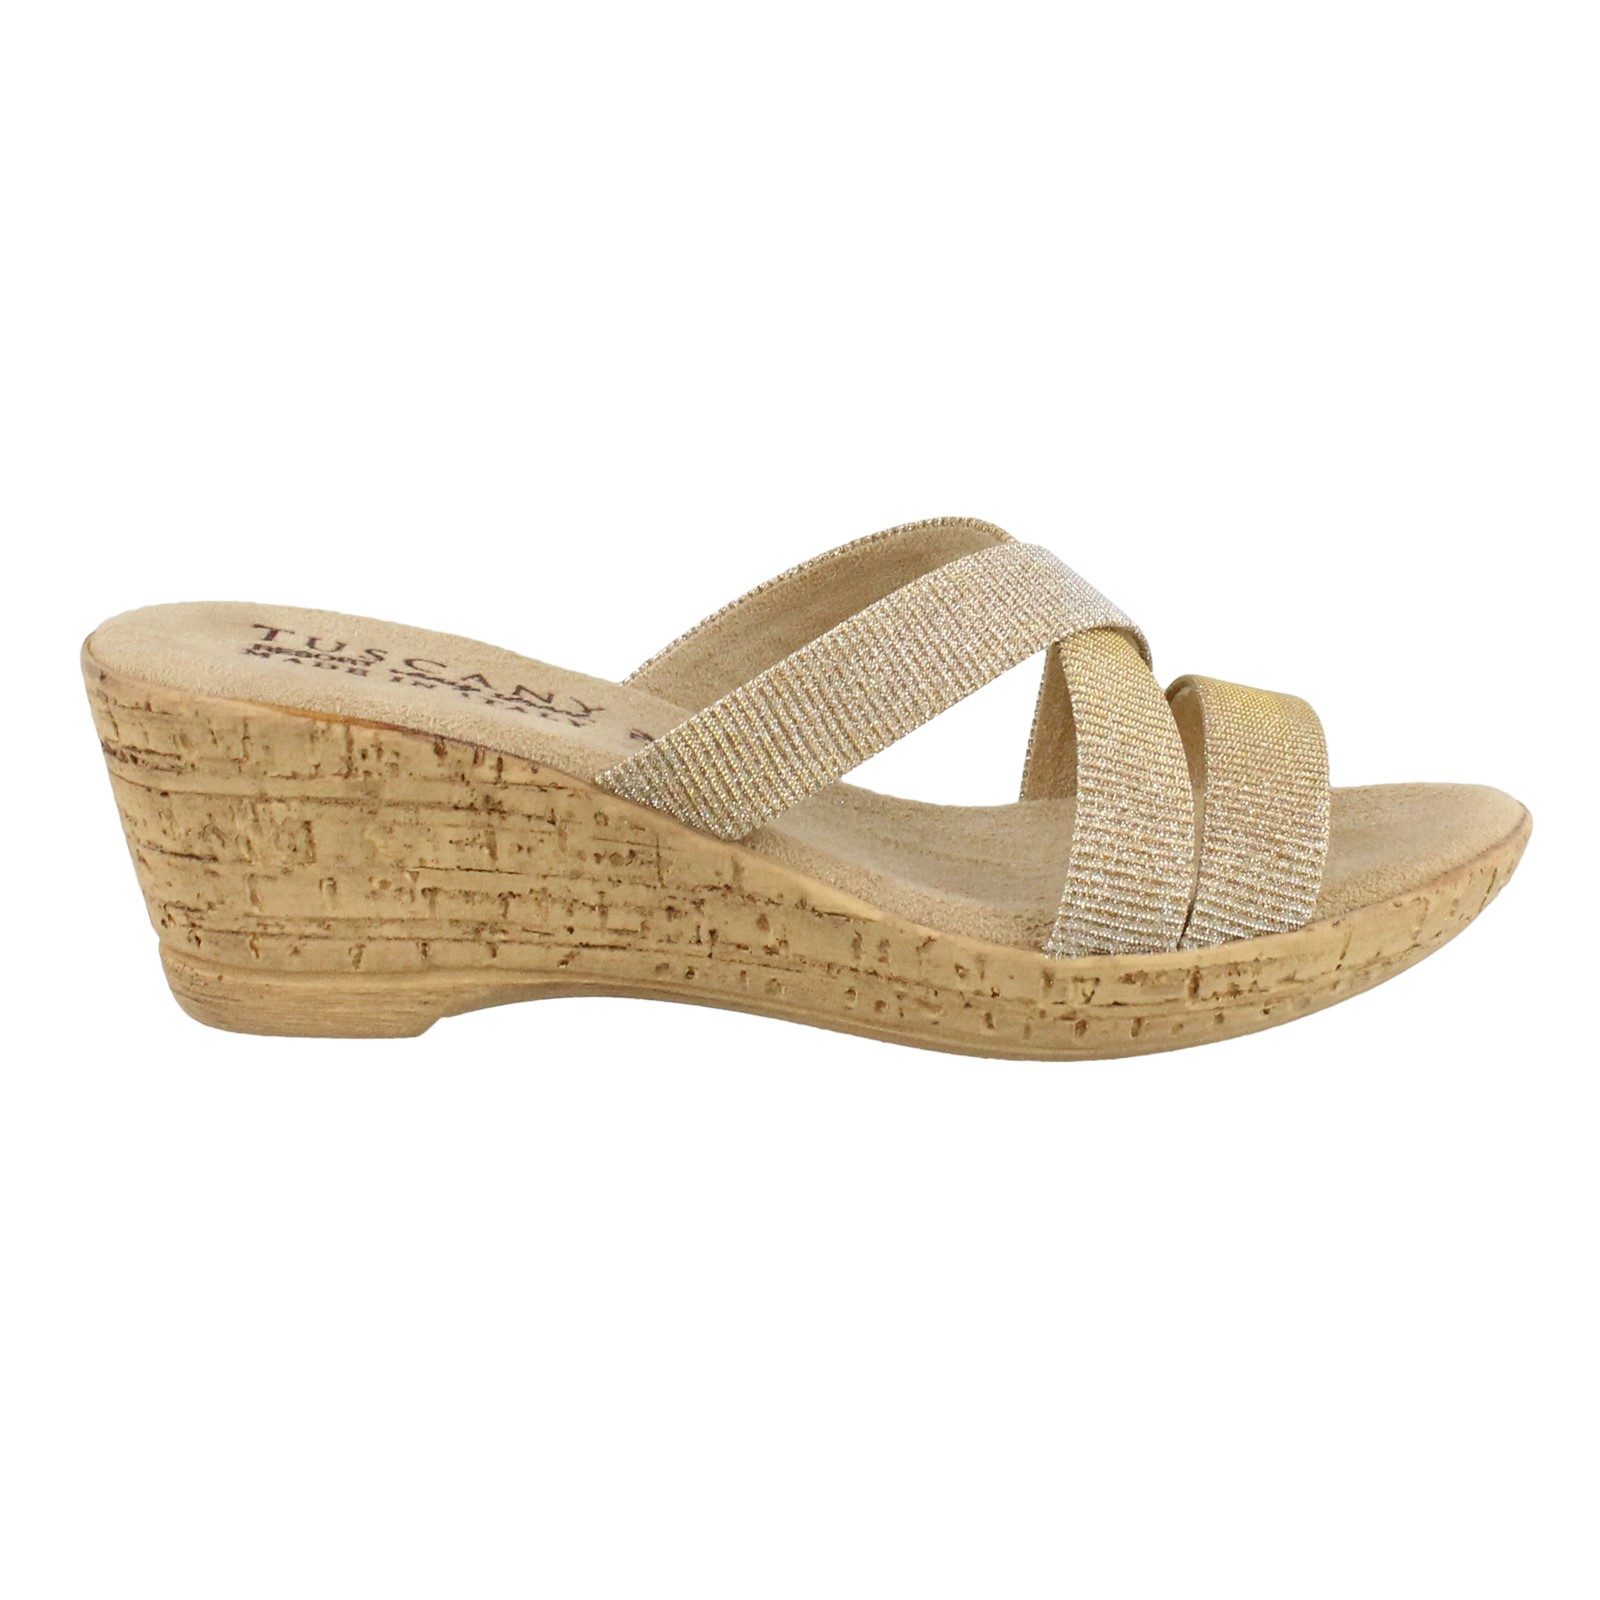 Women's Tuscany by Easy Street, Juliet Wedge Sandals